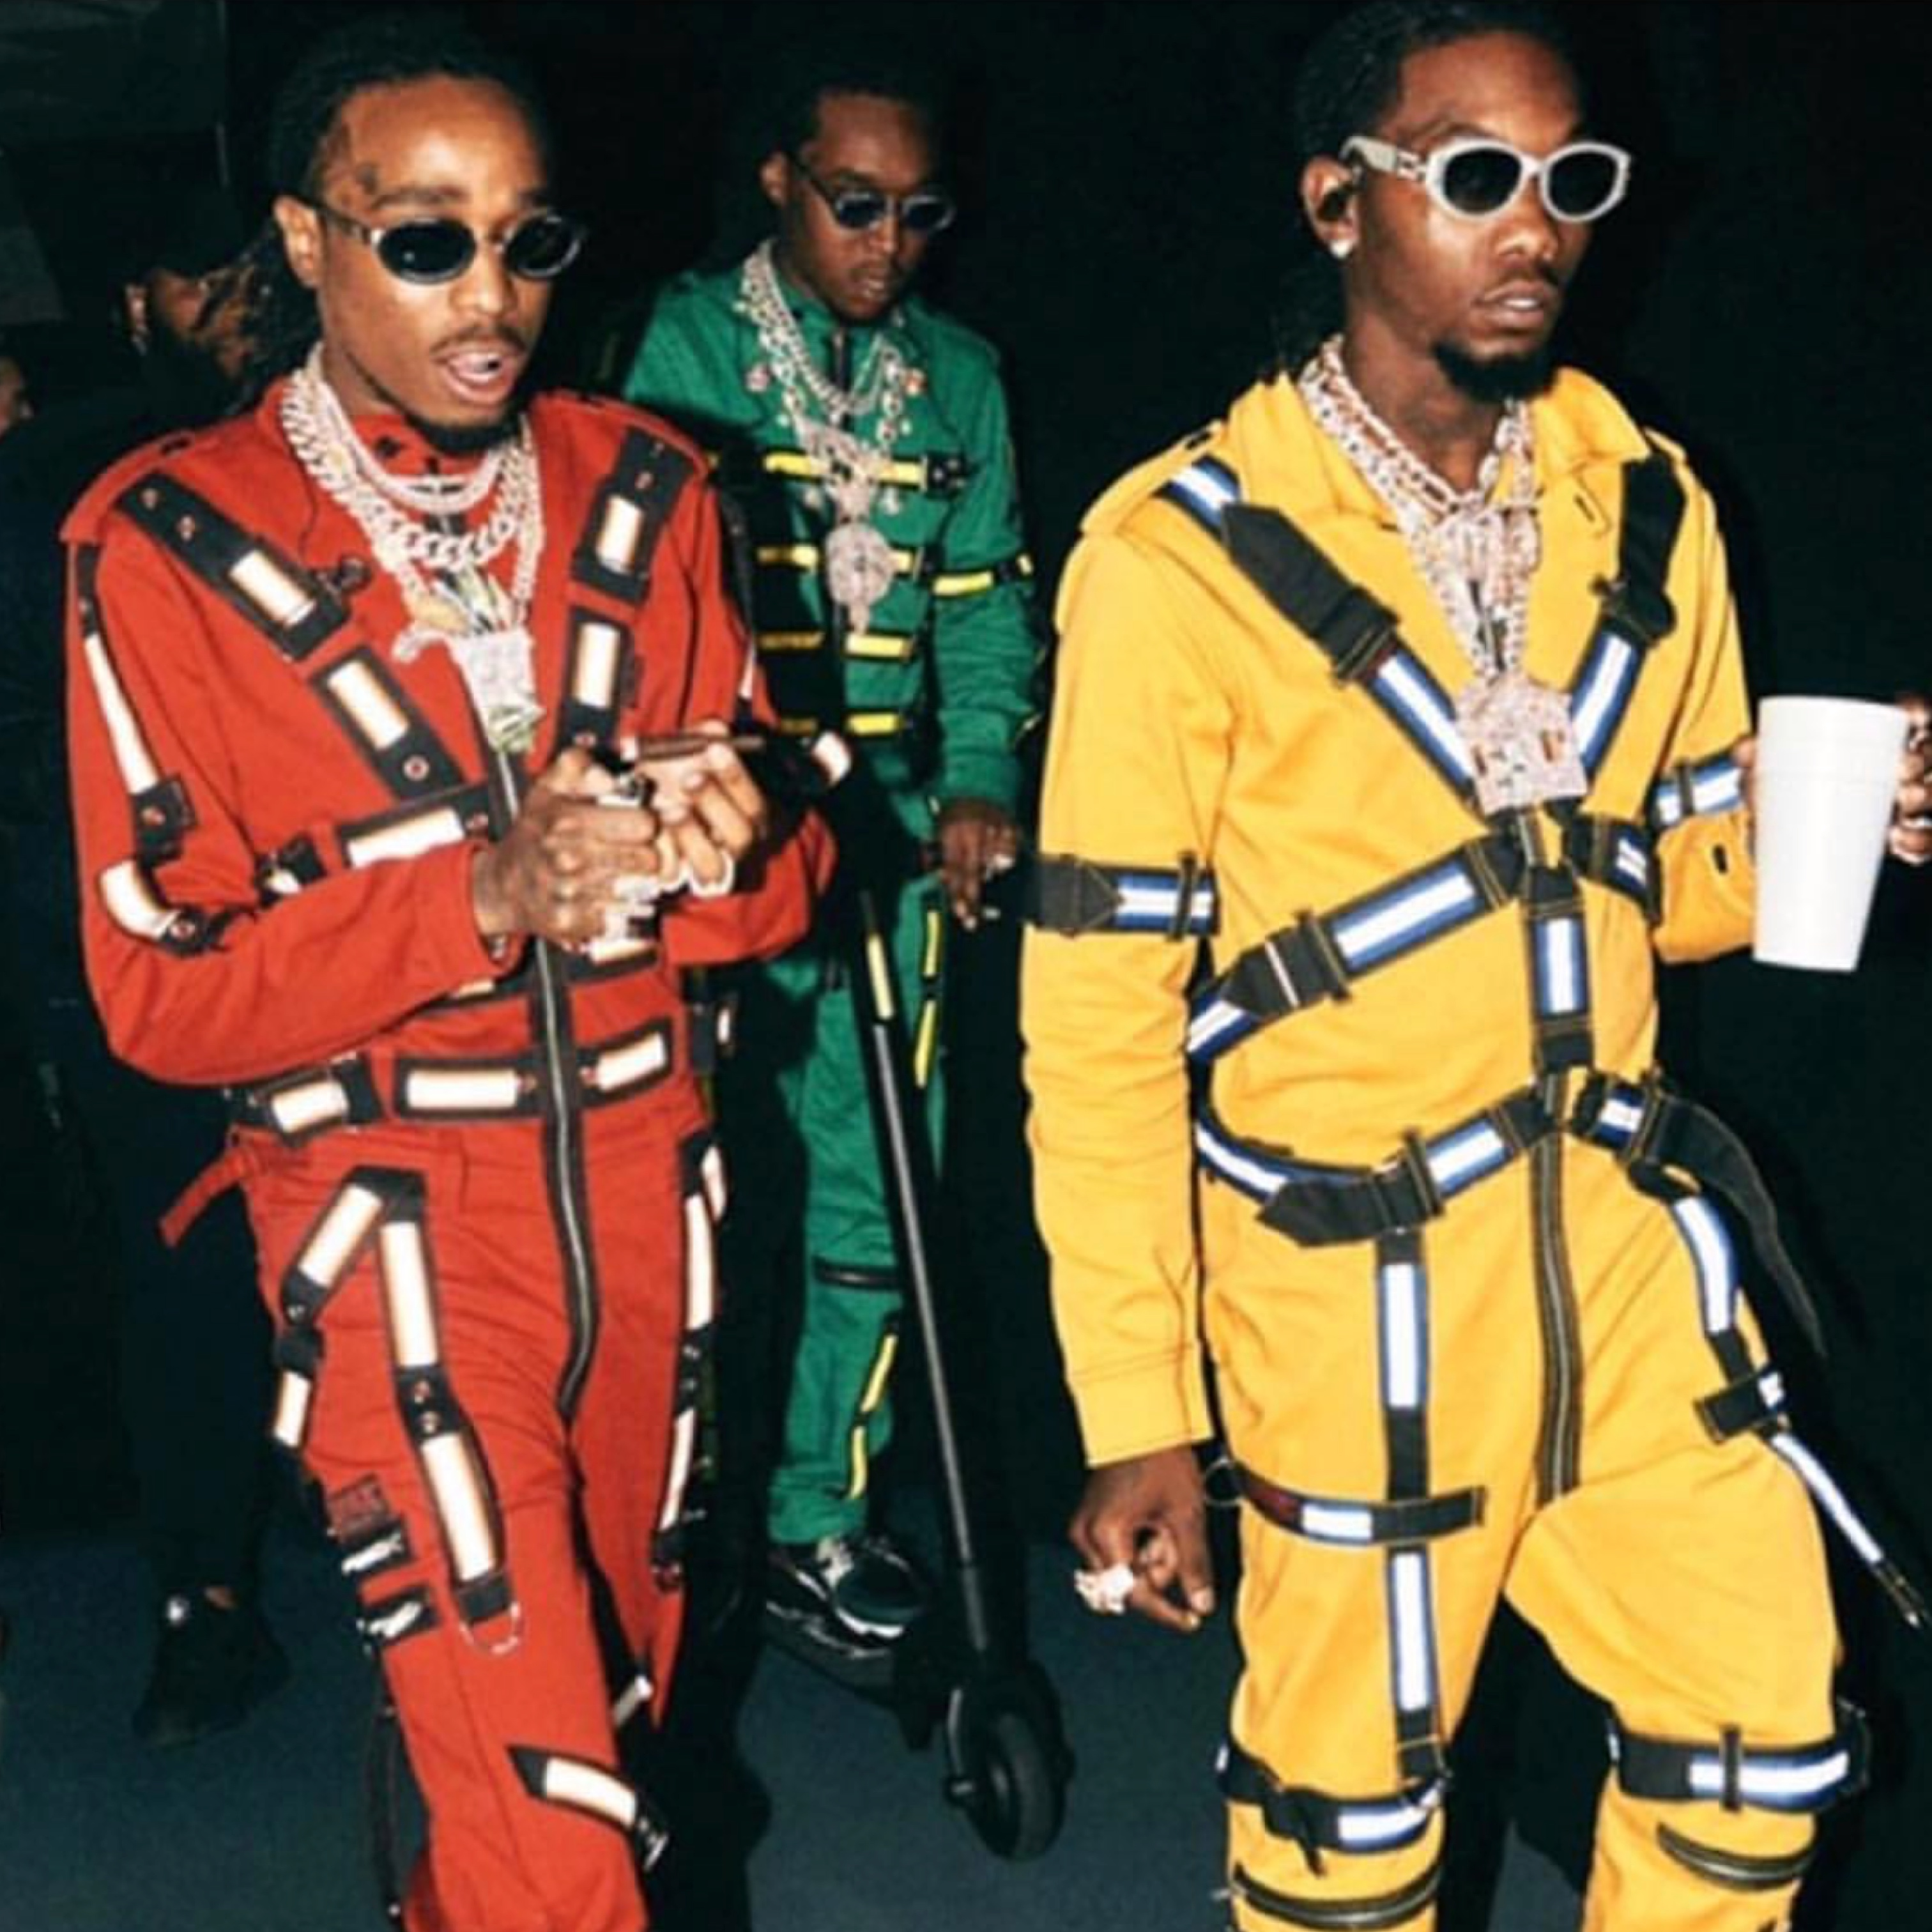 MIGOS WIN FAVORITE GROUP AWARD - 360 MAGAZINE | ART + MUSIC